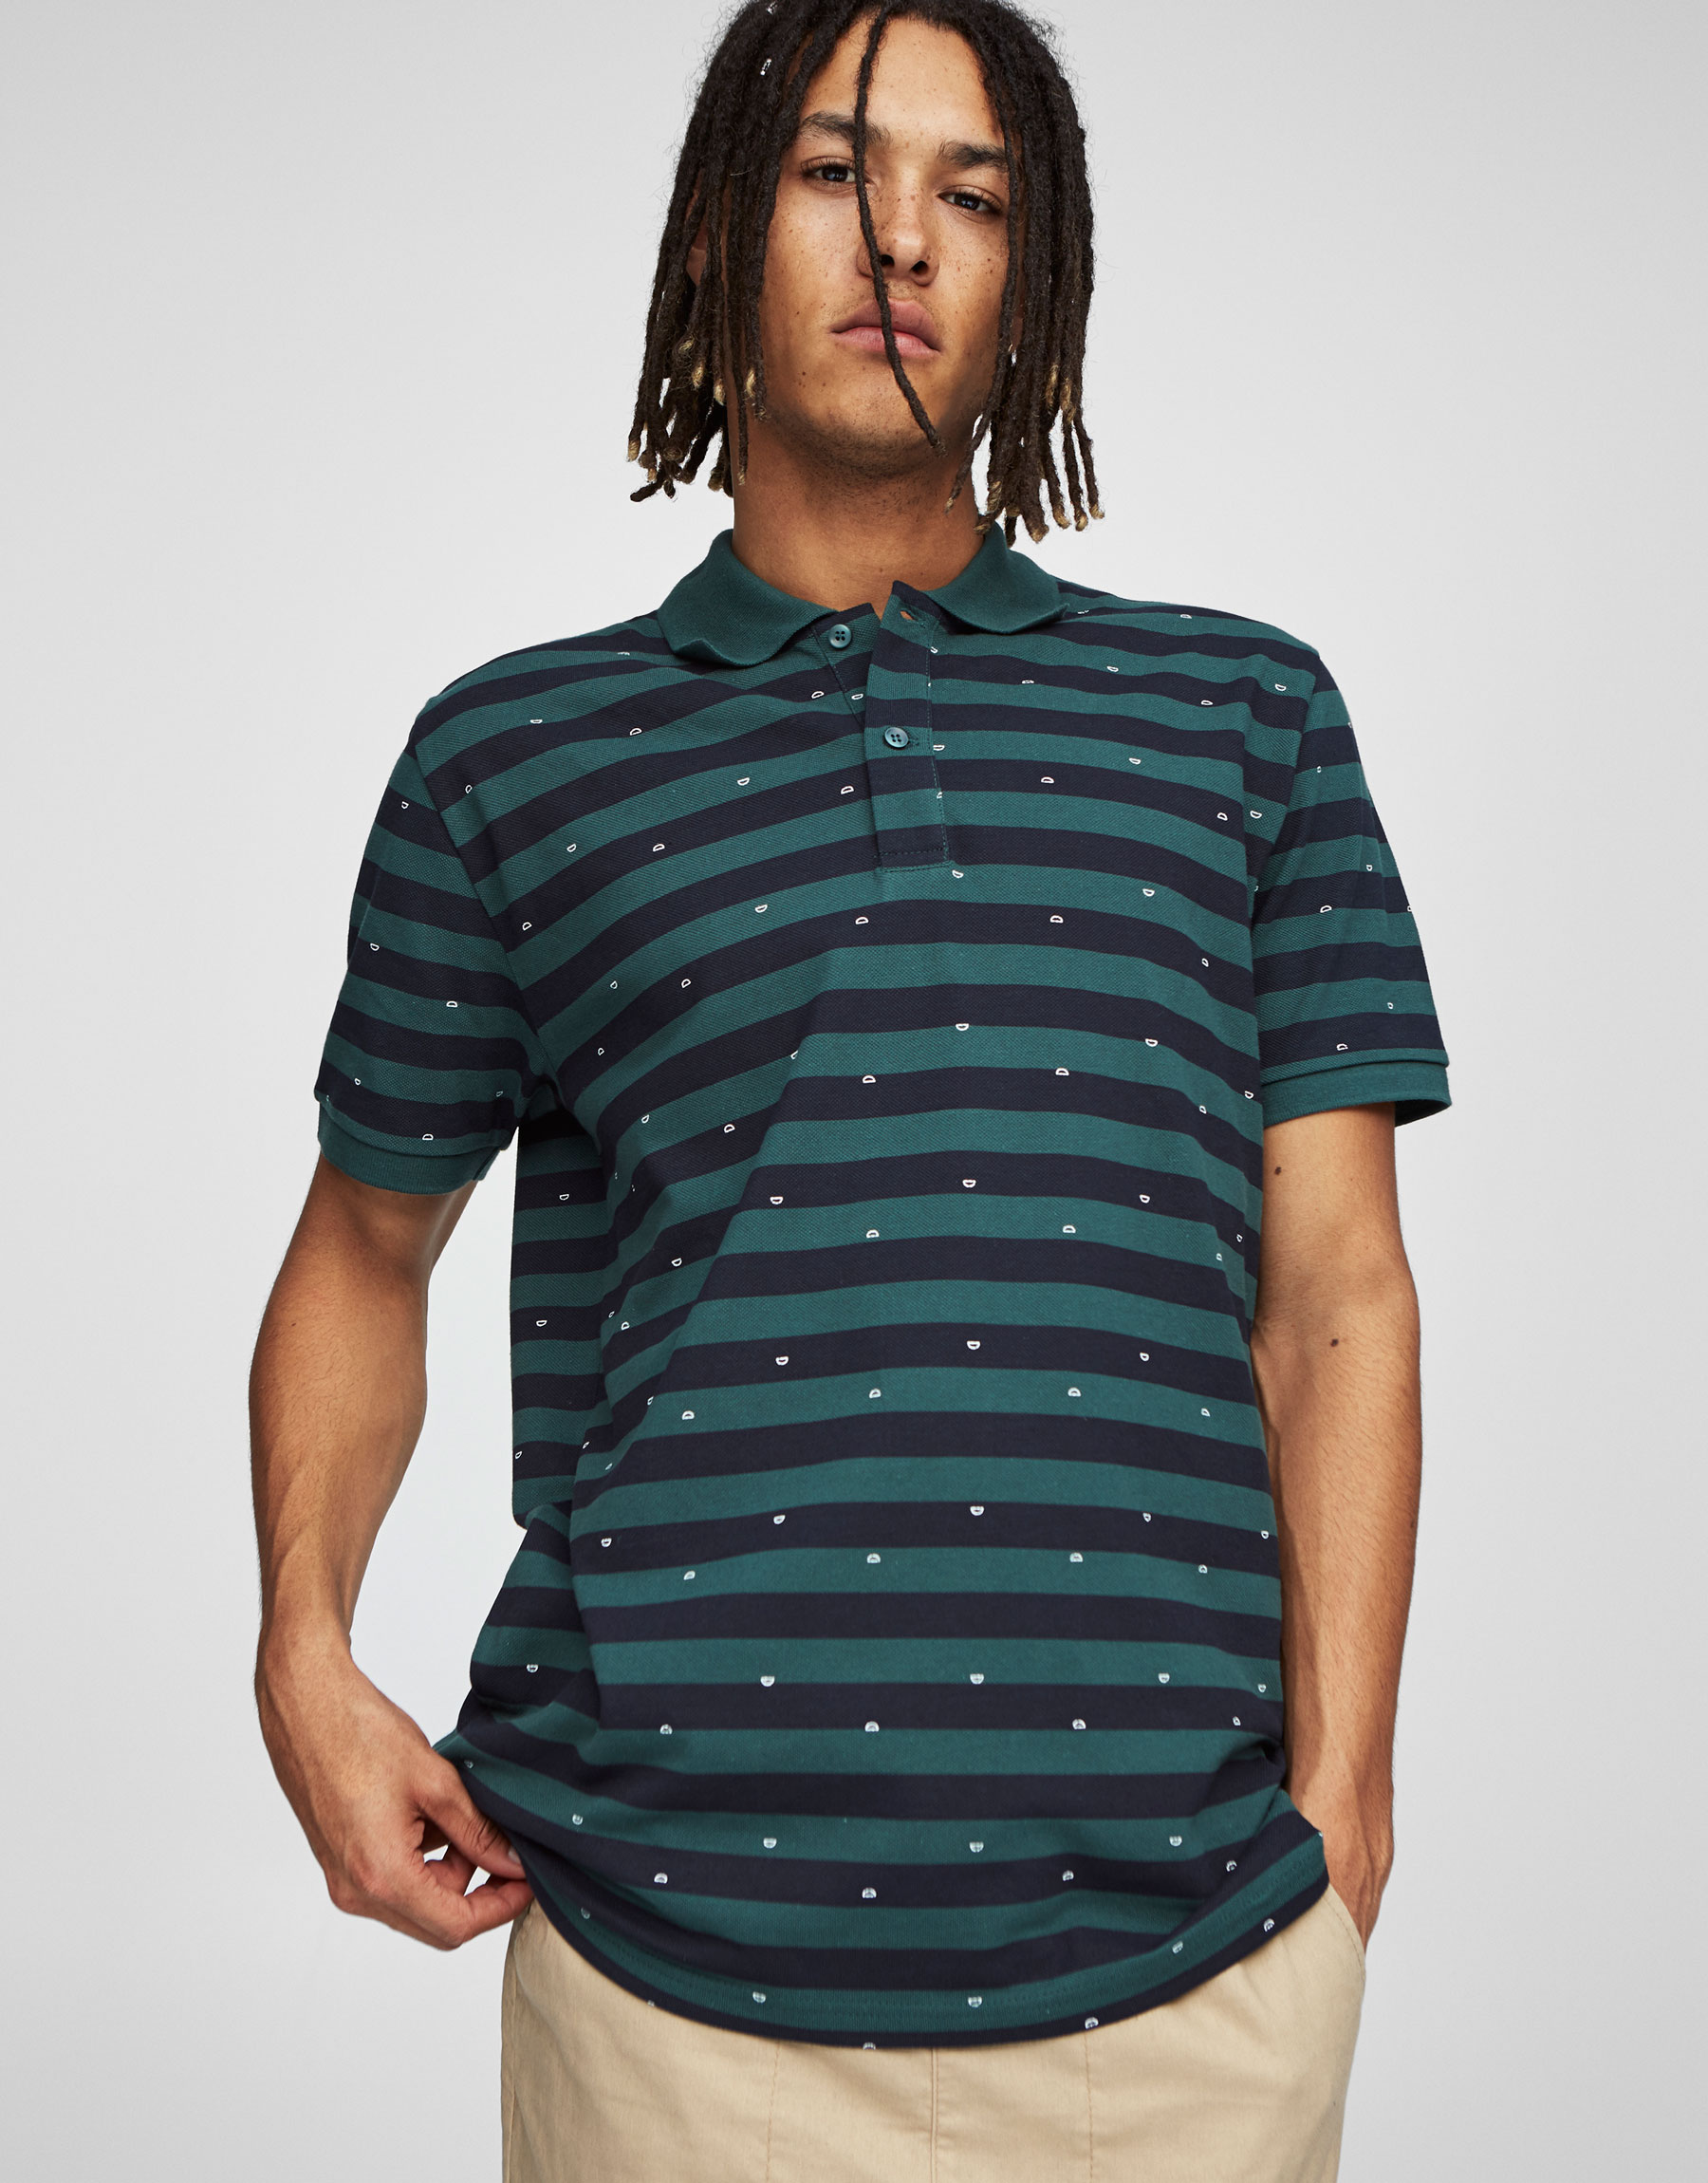 Striped and cloud print polo shirt